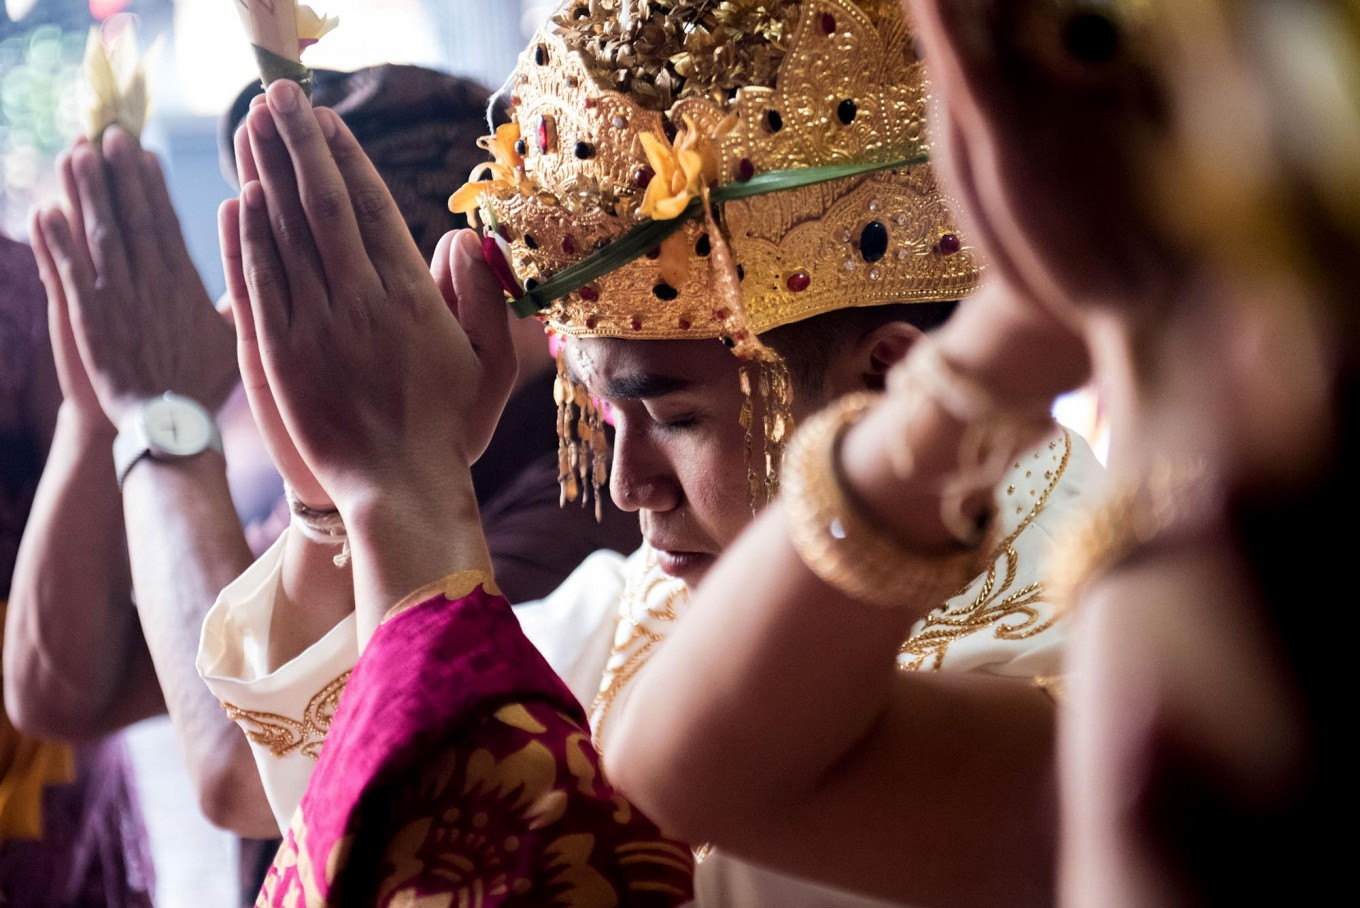 Kadek and Novi perform Hindu prayers during the ceremony at Banjar Taman Yangbatu, Denpasar, on Feb. 2. JP/Anggara Mahendra